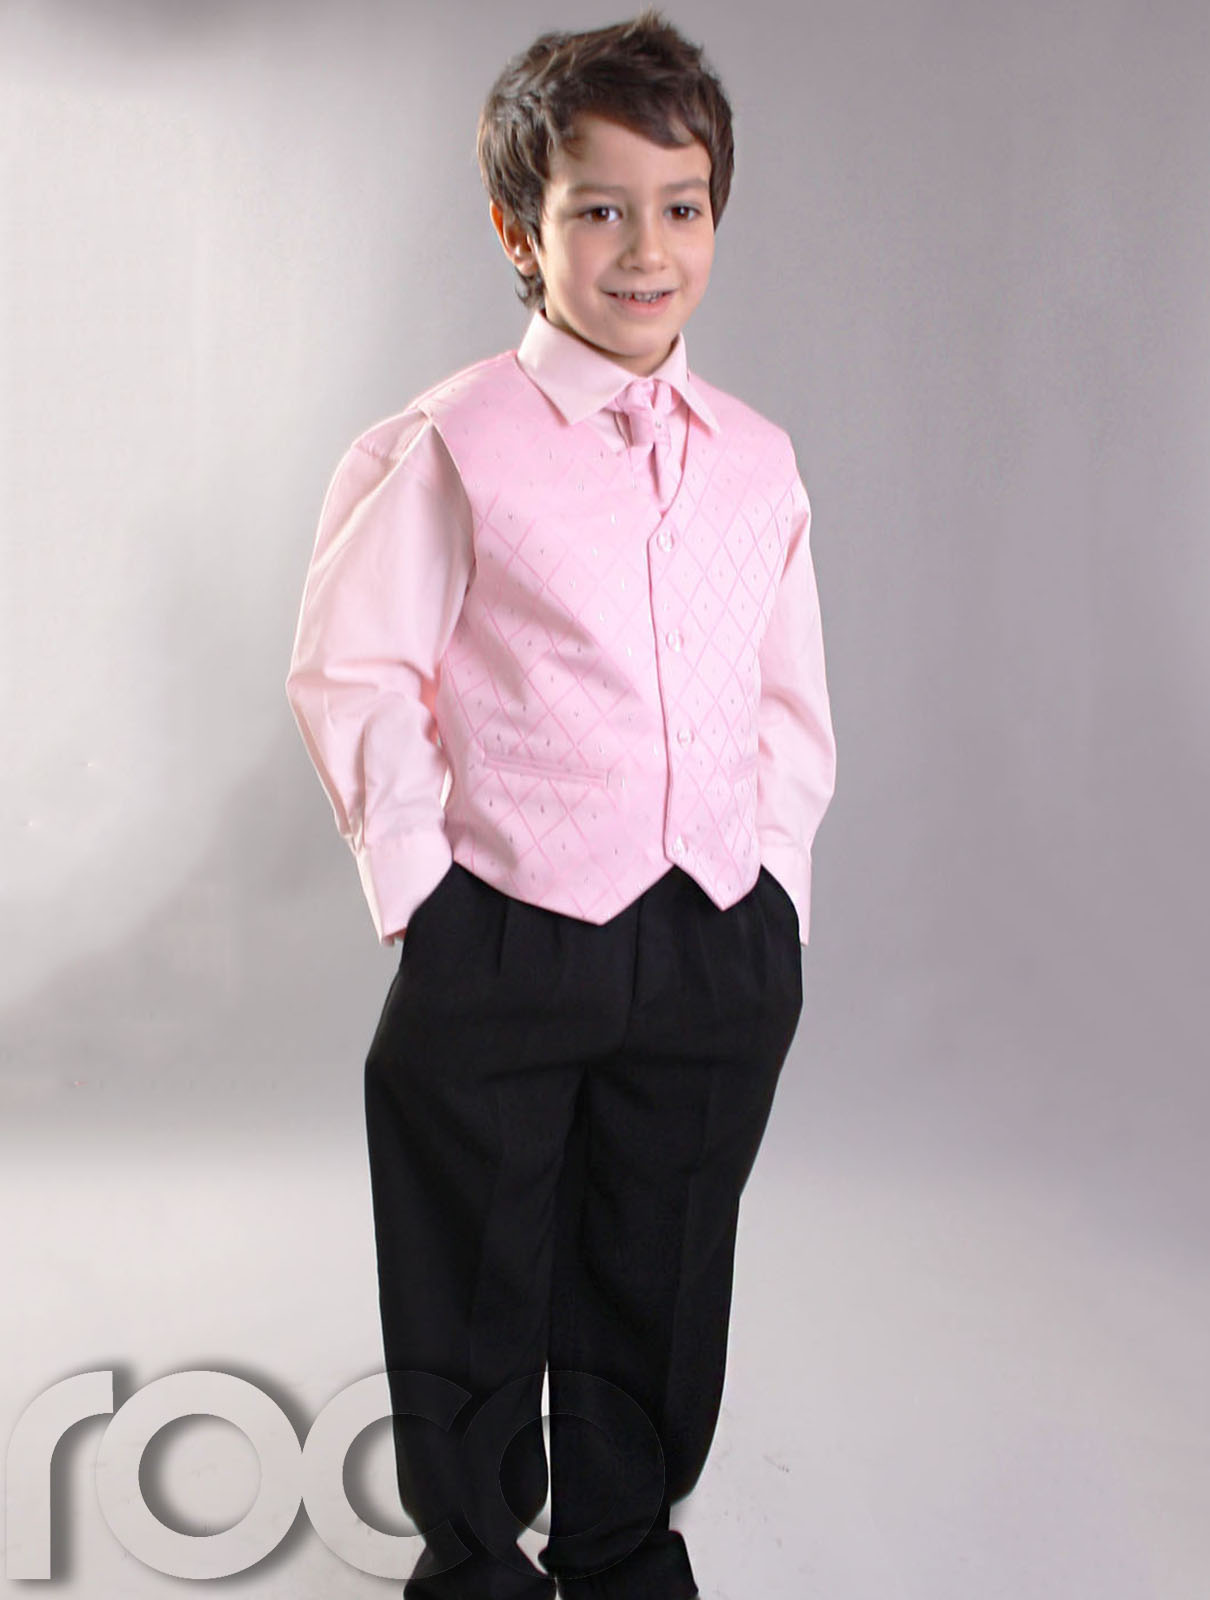 Boys Dress Suits. A special occasion calling for a dressed-up attire? Swap out your hoodies and jeans for boys' dress qrqceh.tk tiny tots and toddlers to little boys and beyond, check out spiffy suits to create sharp looks for your little guy.